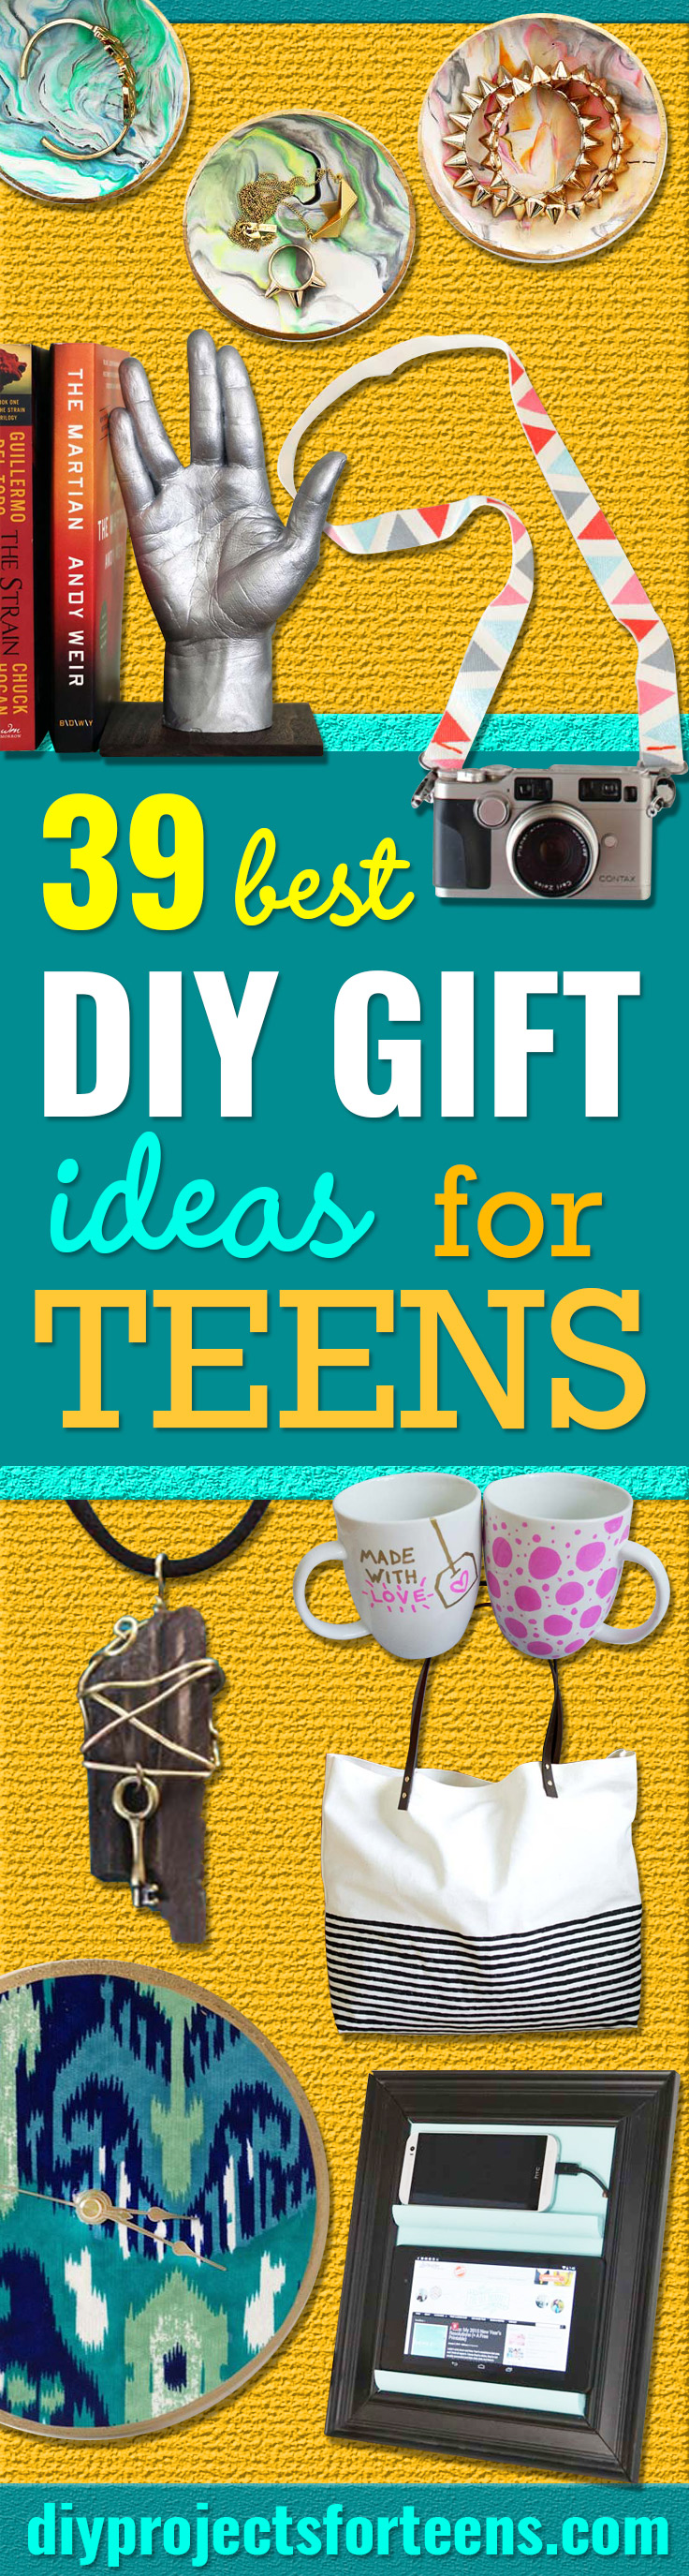 DIY Gifts for Teens - Cool Ideas for Girls and Boys, Friends and Gift Ideas for Teenagers. Creative Room Decor, Fun Wall Art and Awesome Crafts You Can Make for Presents http://diyprojectsforteens.com/diy-gifts-for-teens